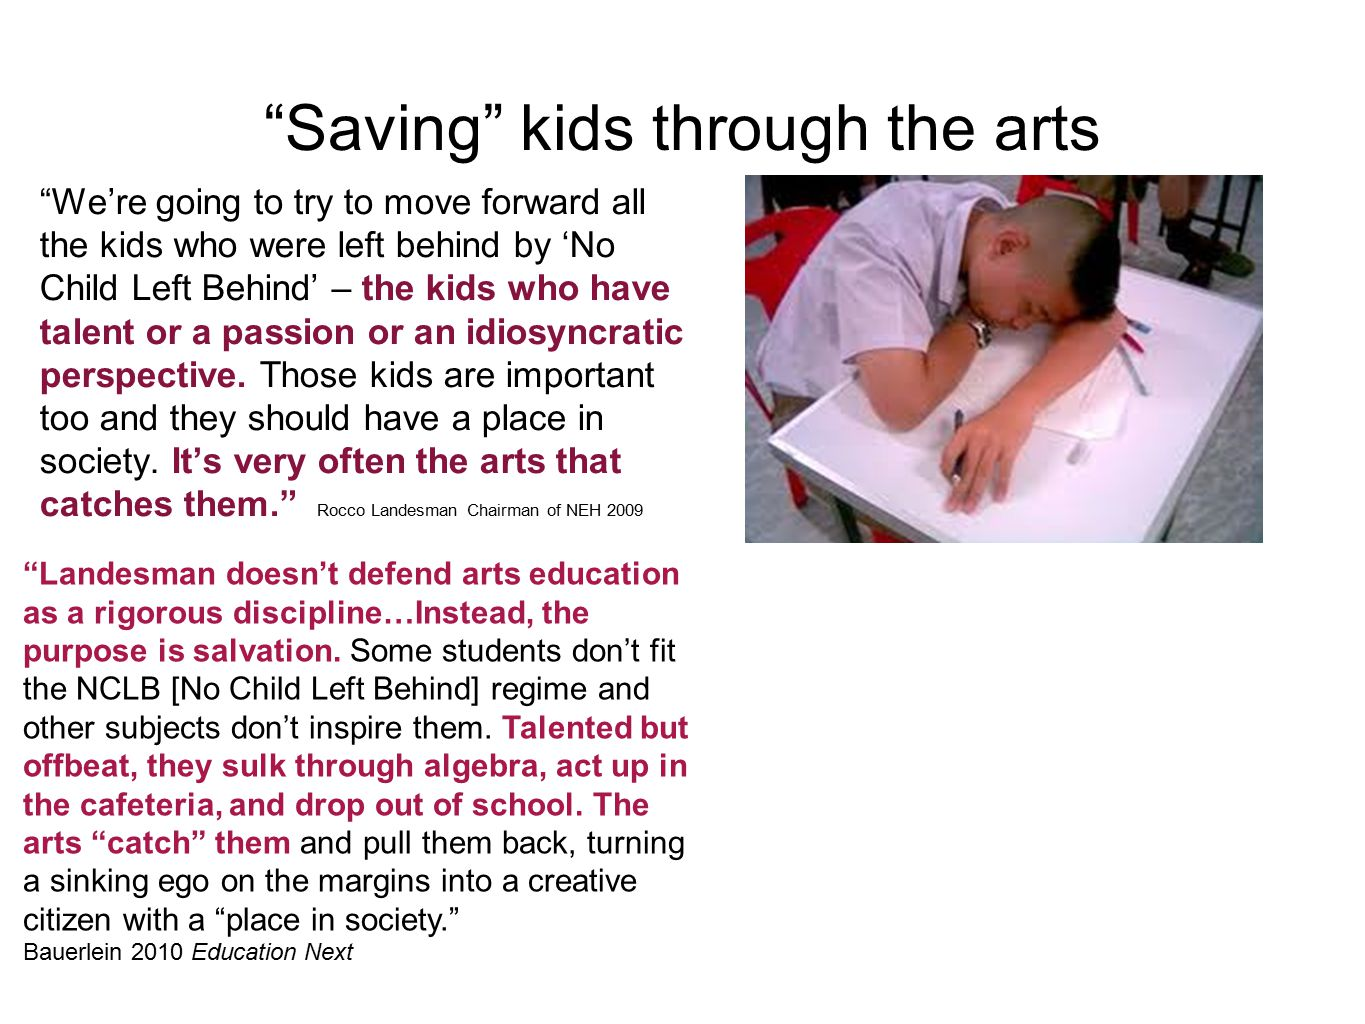 Saving kids through the arts We're going to try to move forward all the kids who were left behind by 'No Child Left Behind' – the kids who have talent or a passion or an idiosyncratic perspective.